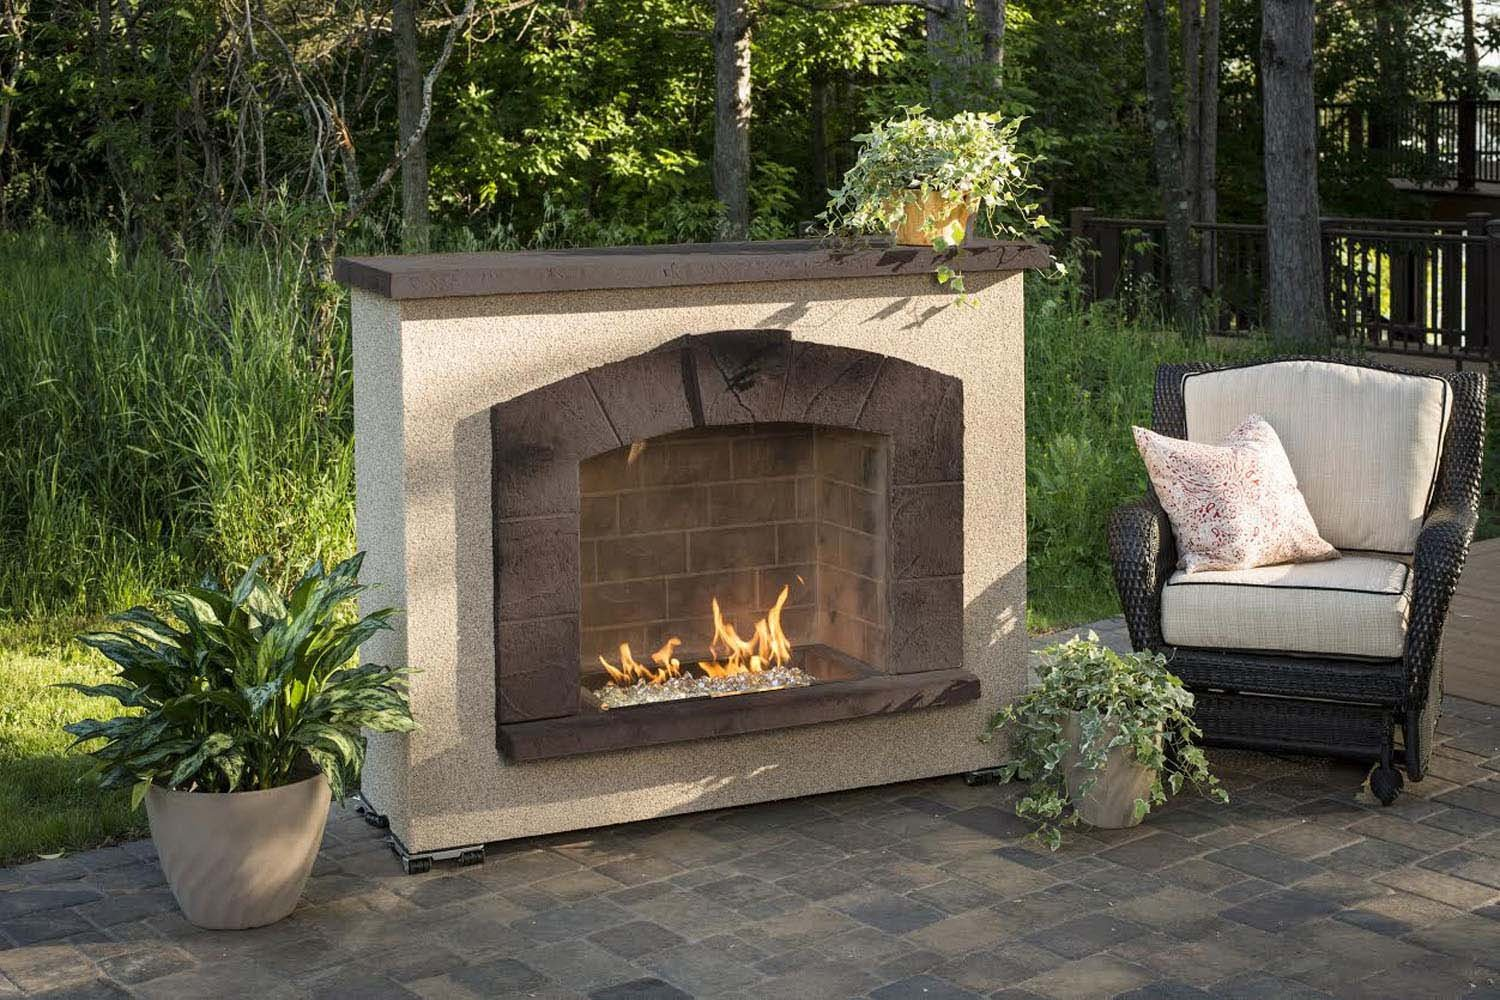 gas fireplace outdoor. amazon.com : outdoor great room stone arch gas fireplace with stucco finish garden \u0026